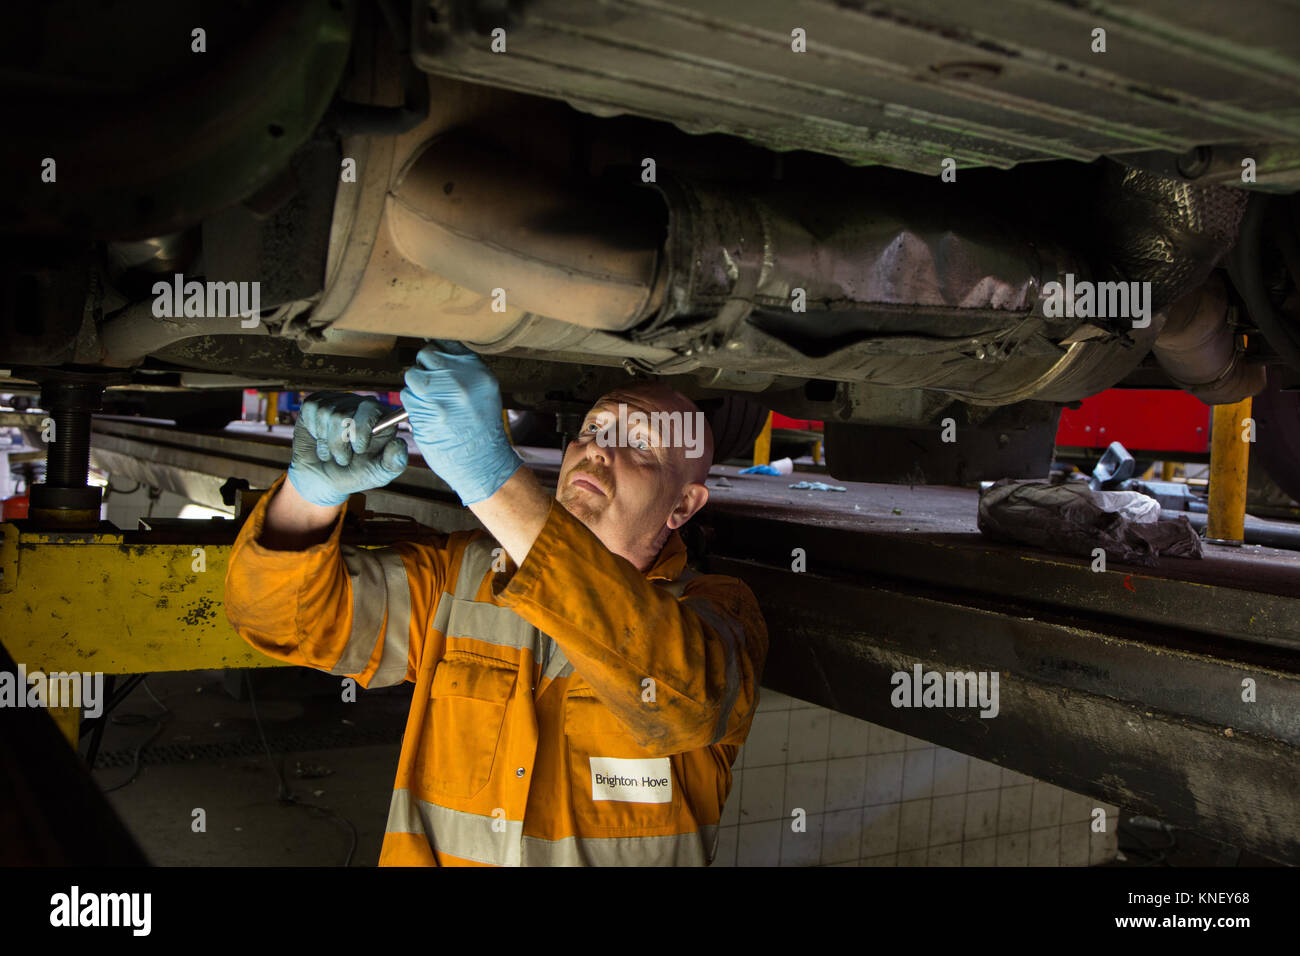 A mechanic working on the engine of a bus from underneath, at the Brighton and Hove Bus Depot - Stock Image